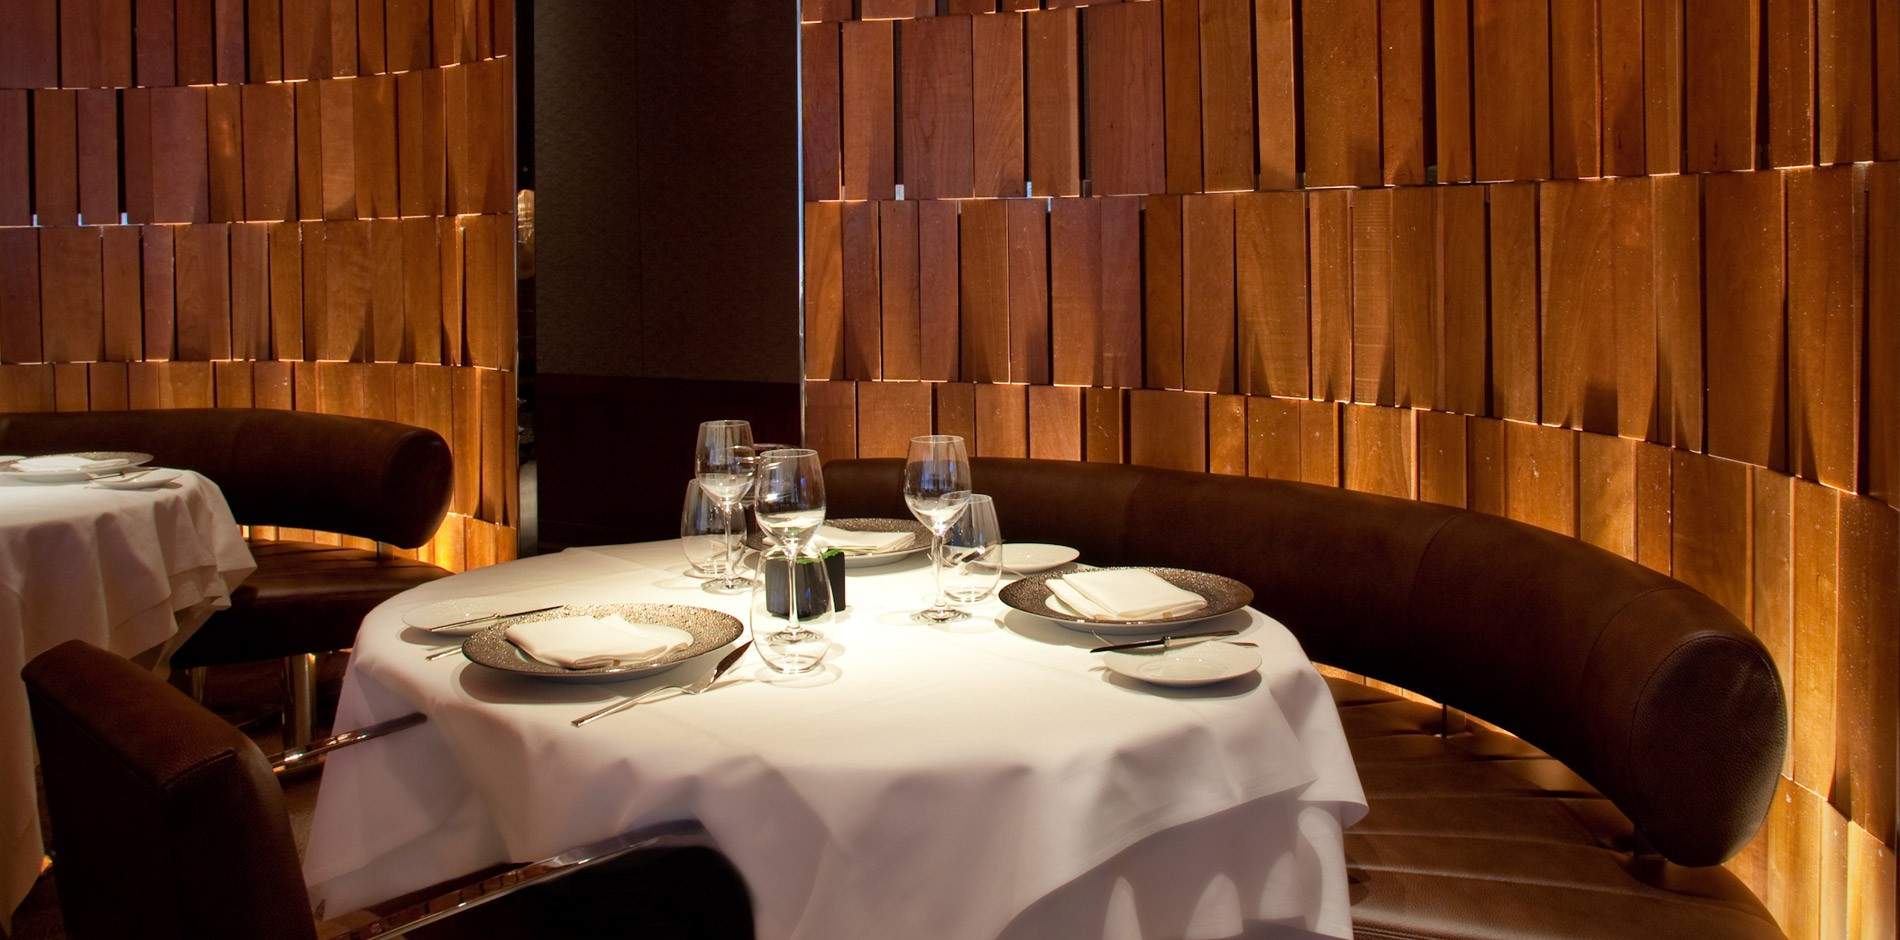 Le Bernardin Fine Dining - New York City Fit-out, Renovation